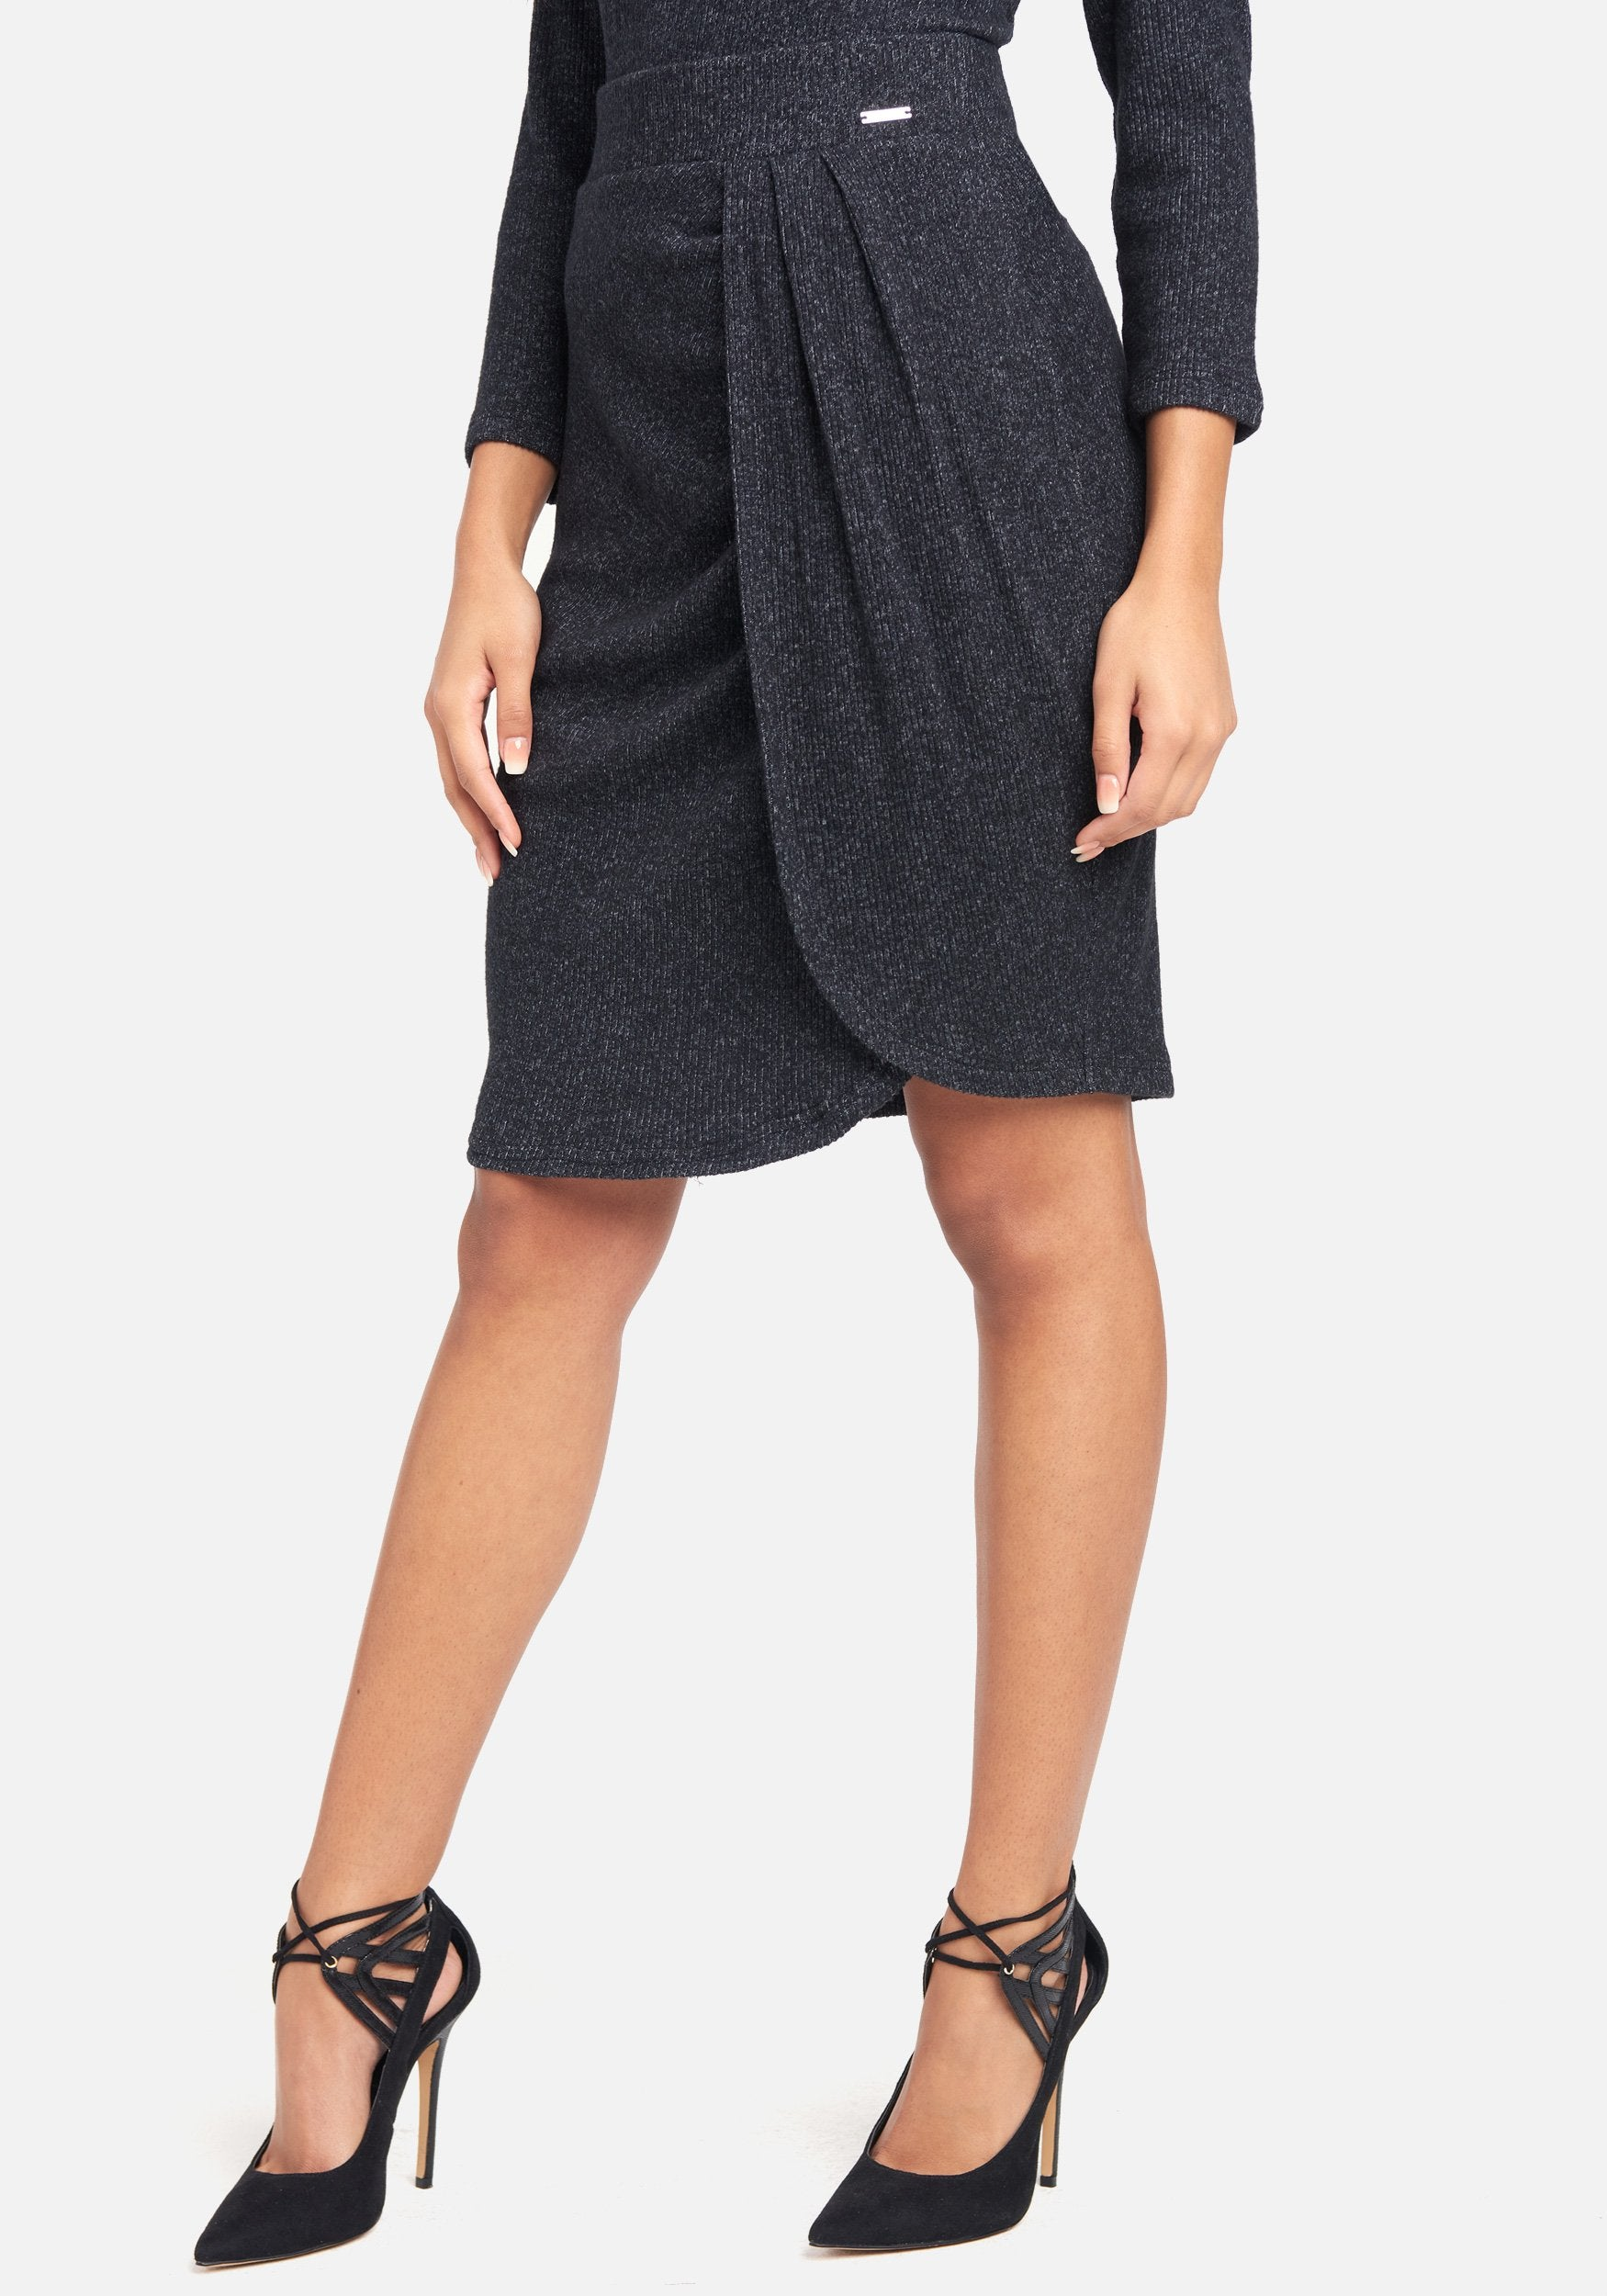 Bebe Women's High Waist Heathered Knit Wrap Skirt, Size XS in Charcoal Grey Spandex/Viscose